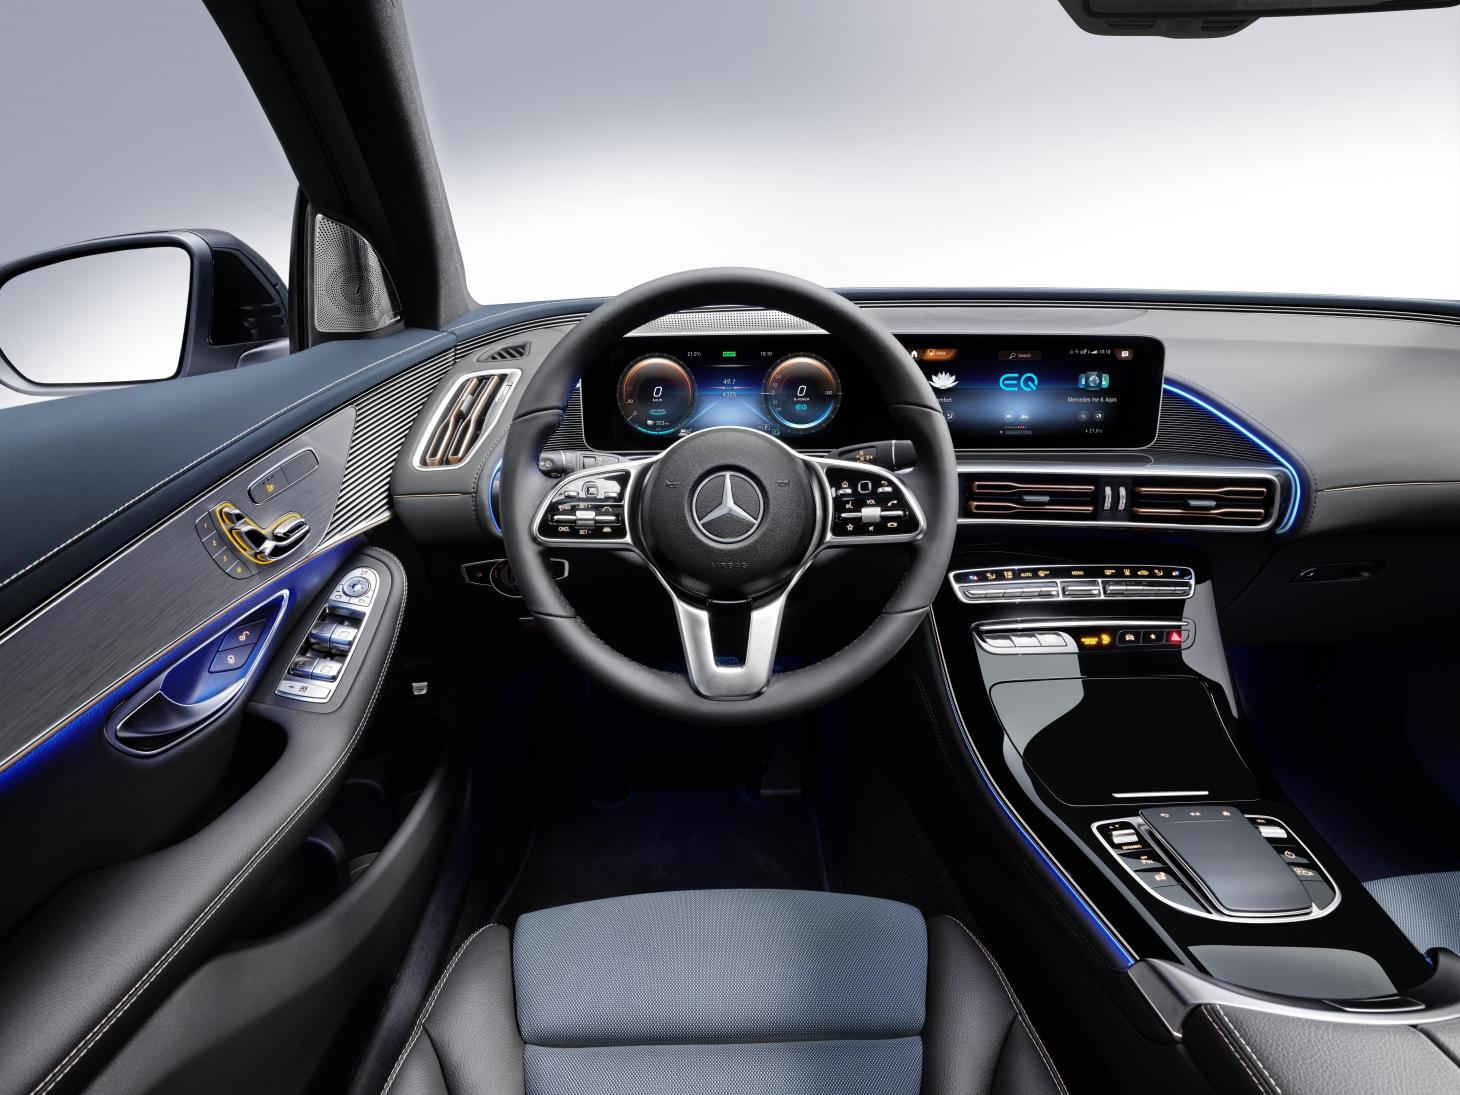 Mercedes electric dreams become reality with EQC Wallpaper 1460x1095